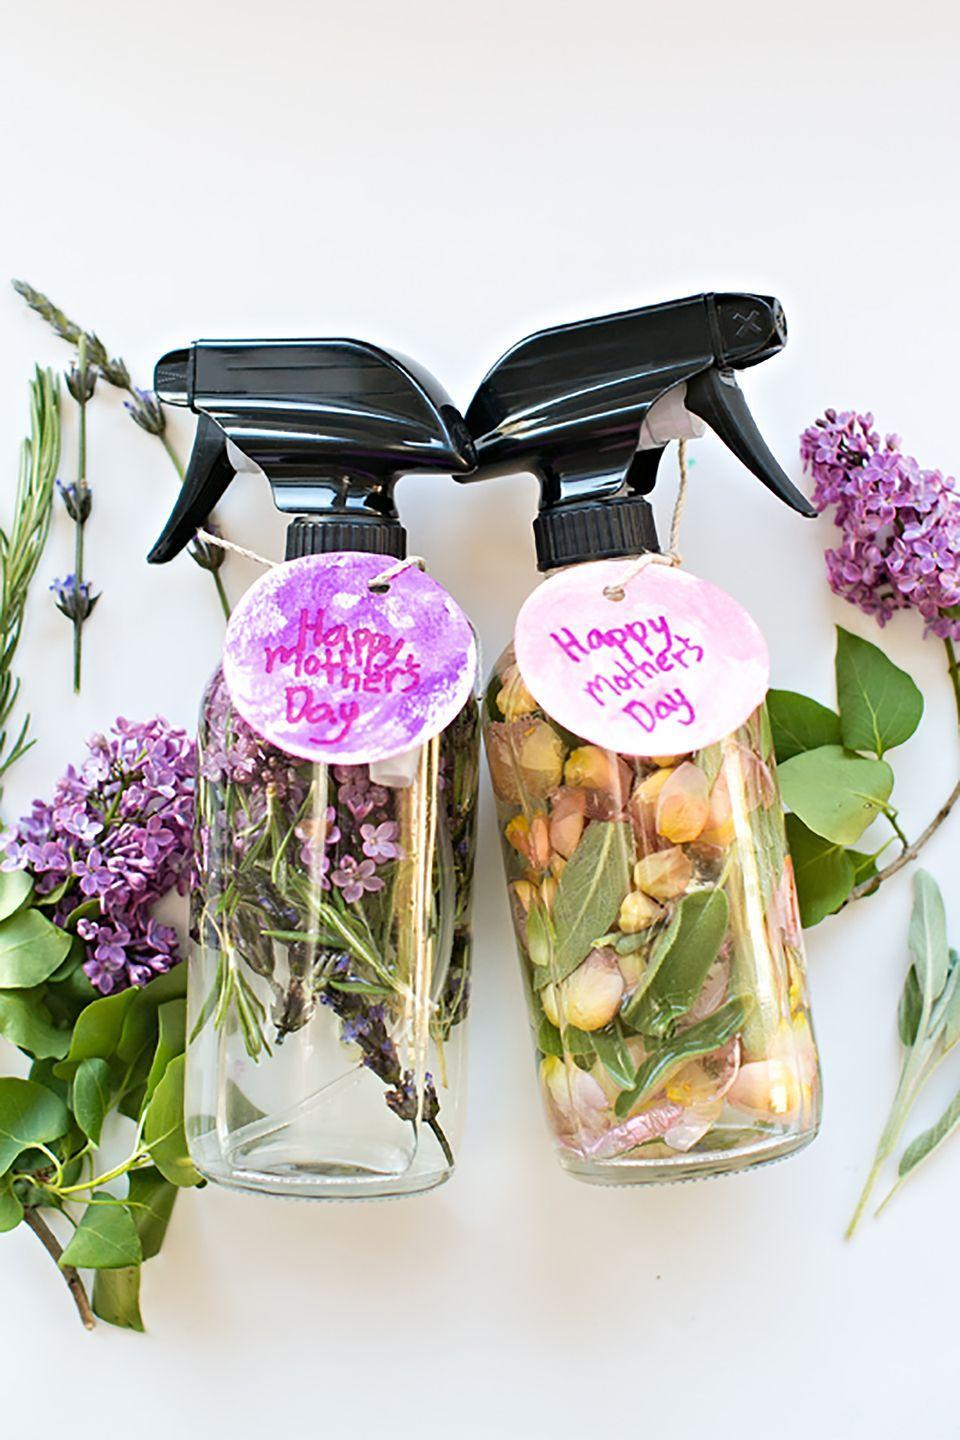 "<p>Made with water, essential oils, and assorted flowers and herbs, these fragrant ""perfumes"" won't last more than a few days, but they make for fun gifts. This blogger and her daughter made one with rose and sage, and another with lavender, lilac, and rosemary.</p><p><strong>Get the tutorial at <a href=""http://www.hellowonderful.co/post/KID-MADE-DIY-MOTHER----S-DAY-FLORAL-HERB-PERFUME#_a5y_p=5283056"" rel=""nofollow noopener"" target=""_blank"" data-ylk=""slk:Hello, Wonderful"" class=""link rapid-noclick-resp"">Hello, Wonderful</a>. </strong></p>"